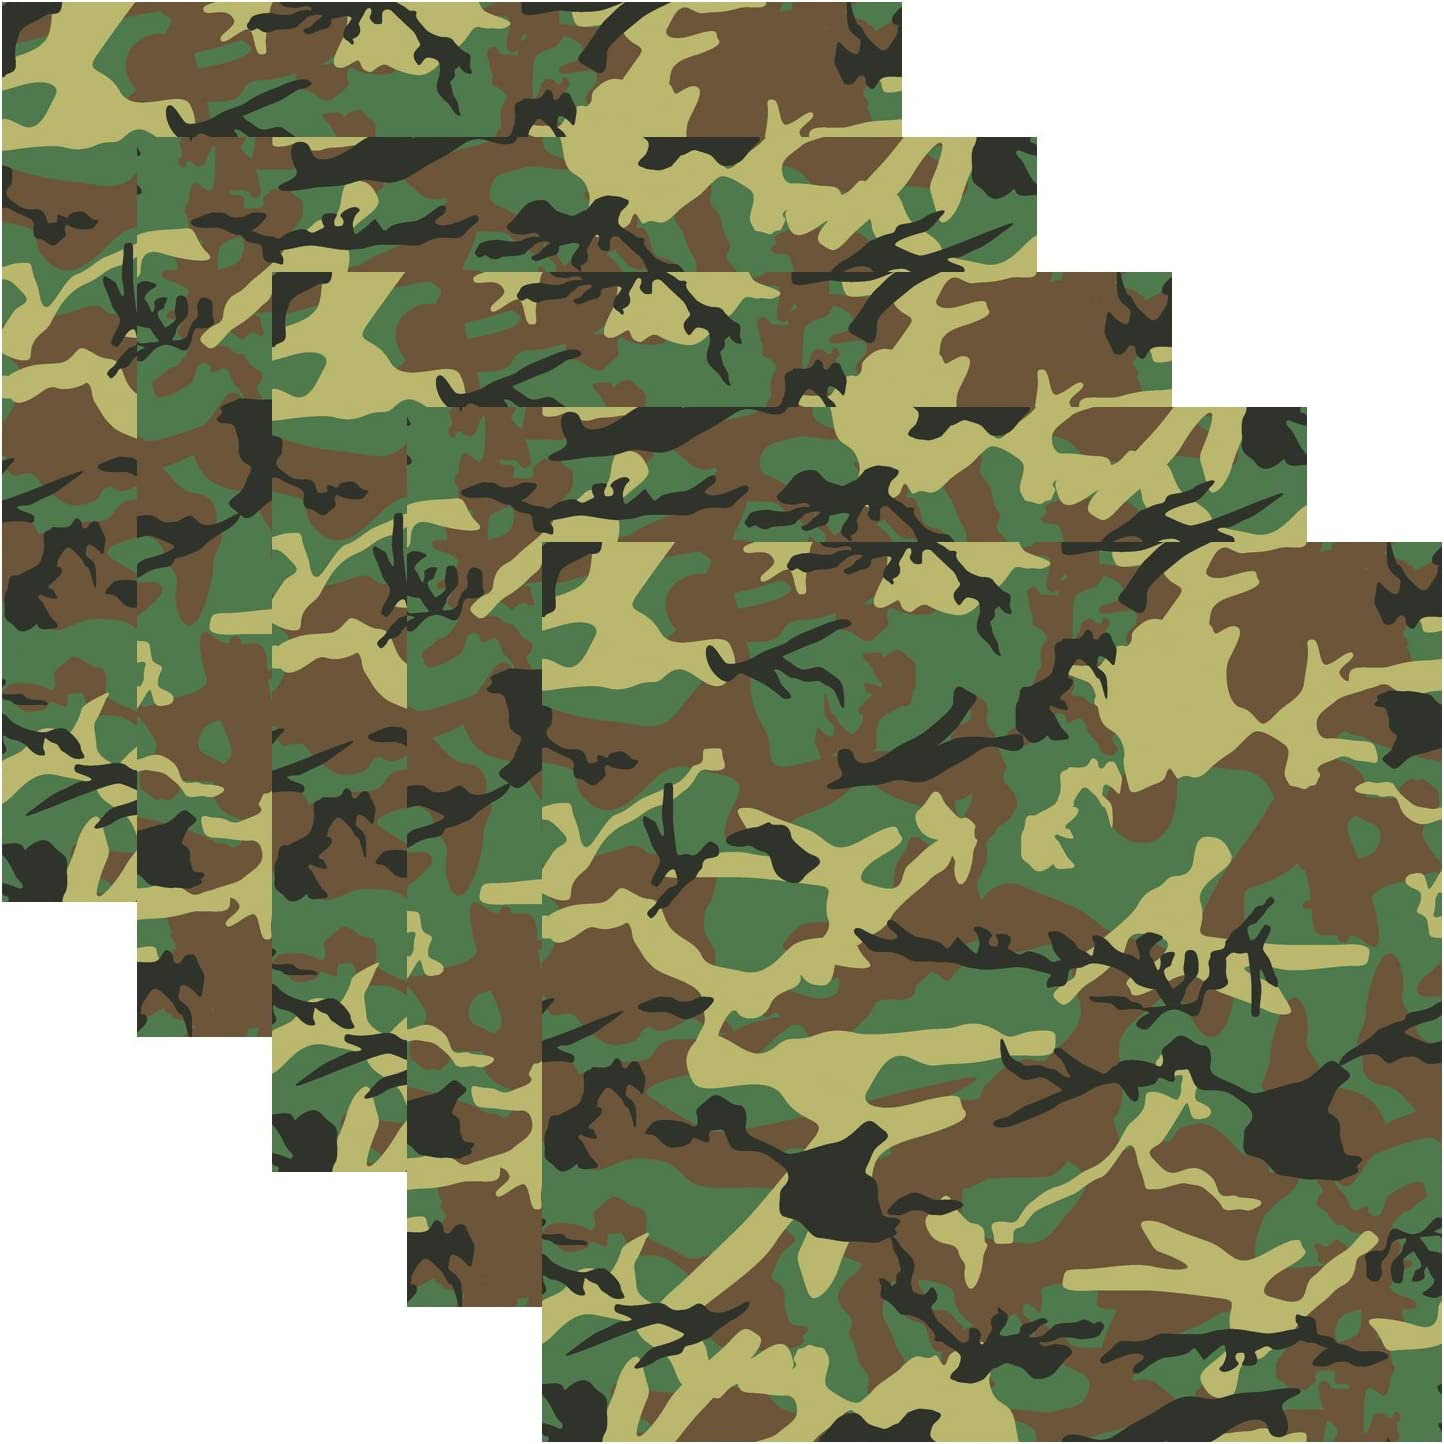 "Army Green Camouflage Self Adhesive Assorted Vinyl Sheets 12"" x 12"" Military Camo Permanent Adhesive Backed Vinyl for Crafting Project Decals and Other Craft Cutters - Pack of 5"